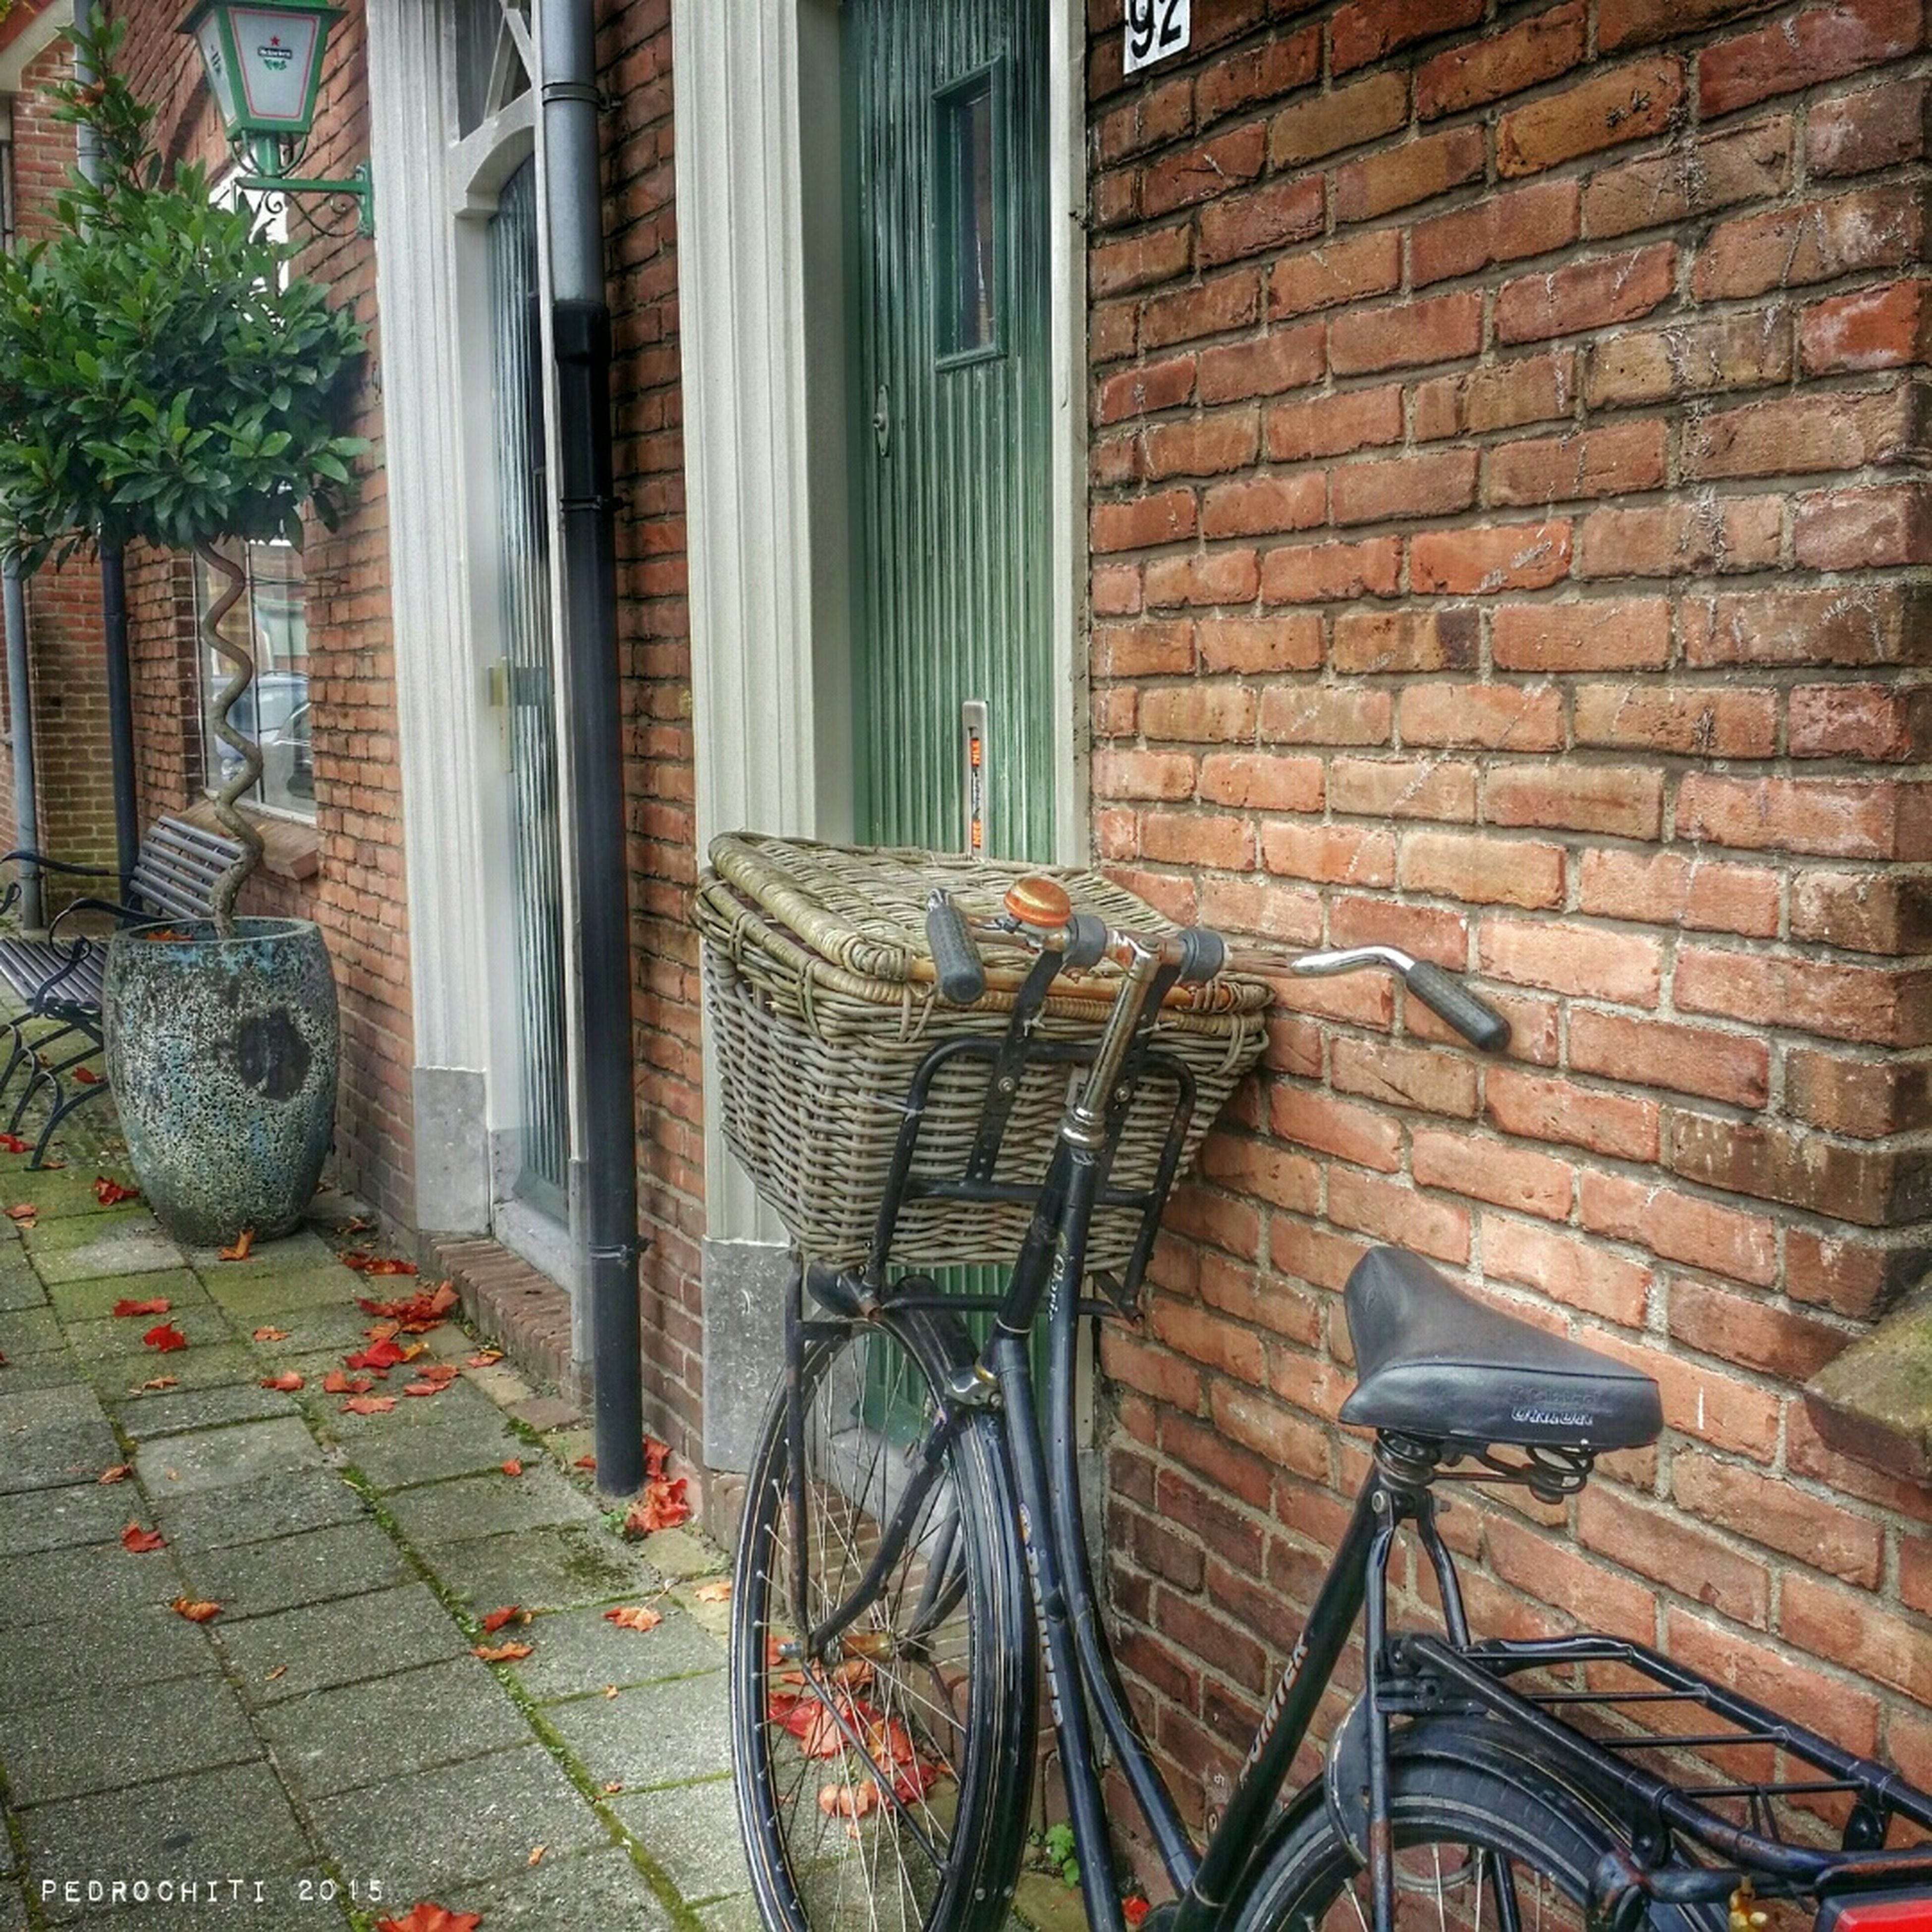 building exterior, architecture, built structure, brick wall, wall - building feature, building, window, bicycle, wall, house, cobblestone, sidewalk, residential structure, outdoors, day, residential building, stone wall, street, no people, transportation